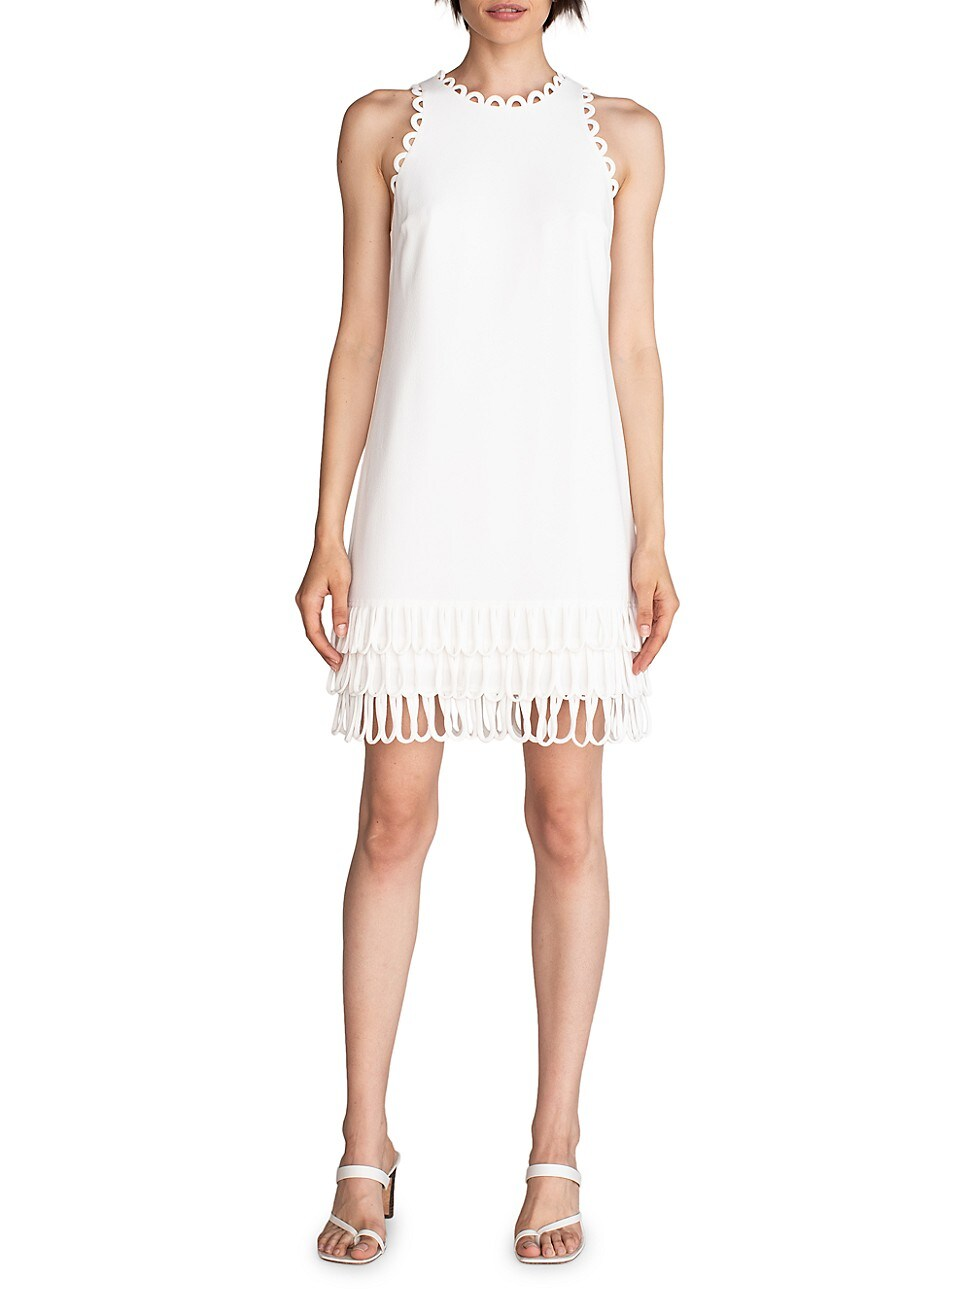 Trina Turk WOMEN'S SEAHORSE SCALLOPED TRIM SHIFT DRESS